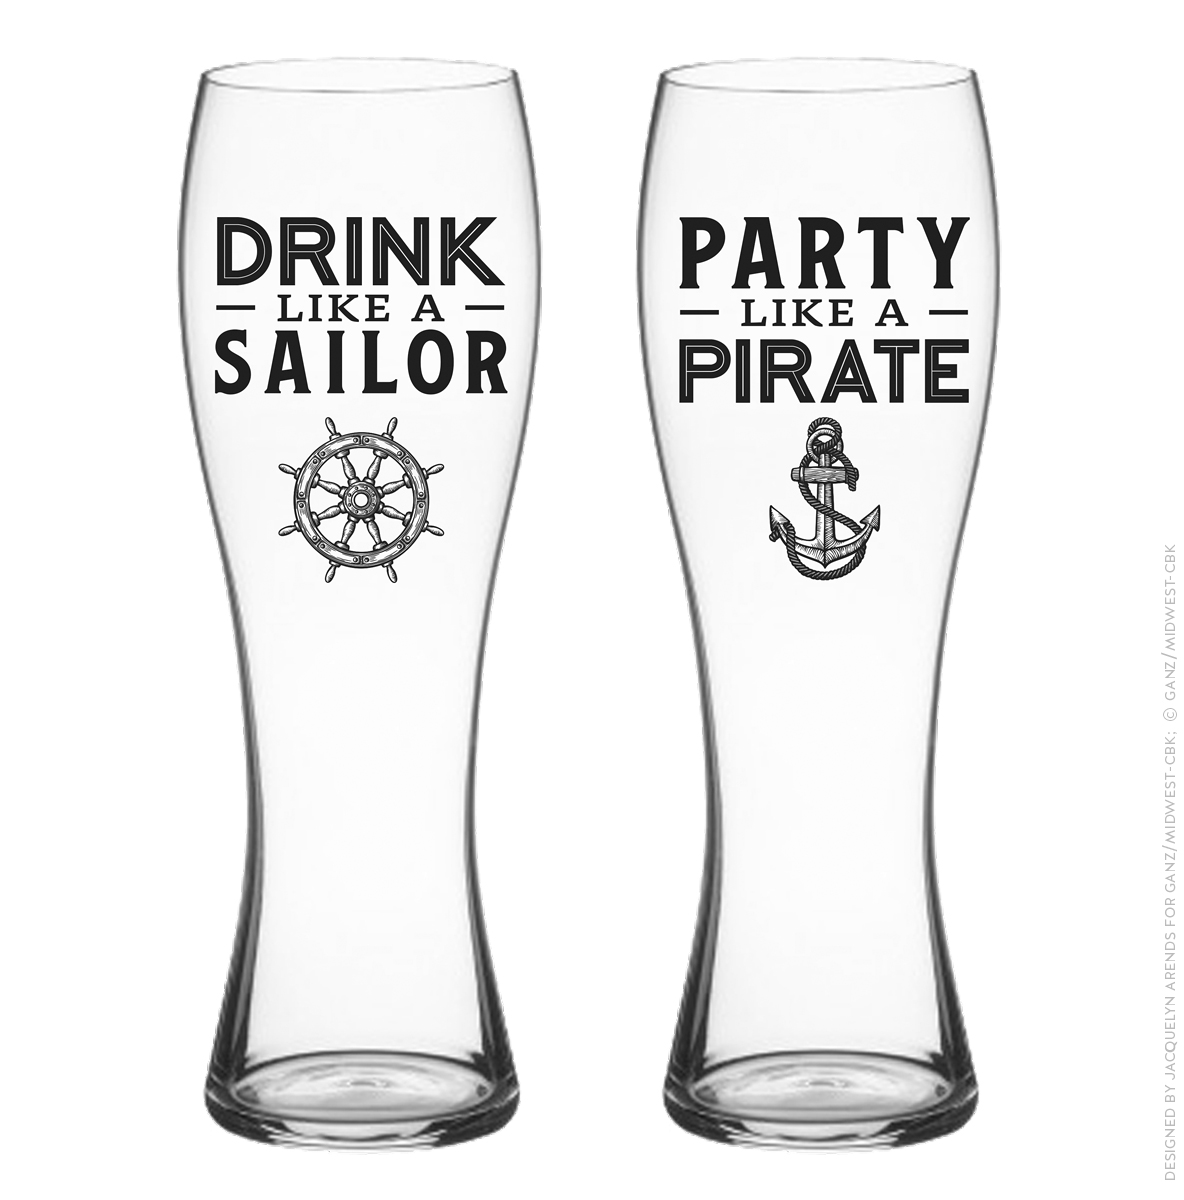 Men's Gift 2018 - Drink Like a Sailor & Party Like a Party pilsner set; © Ganz/Midwest-CBK 2018